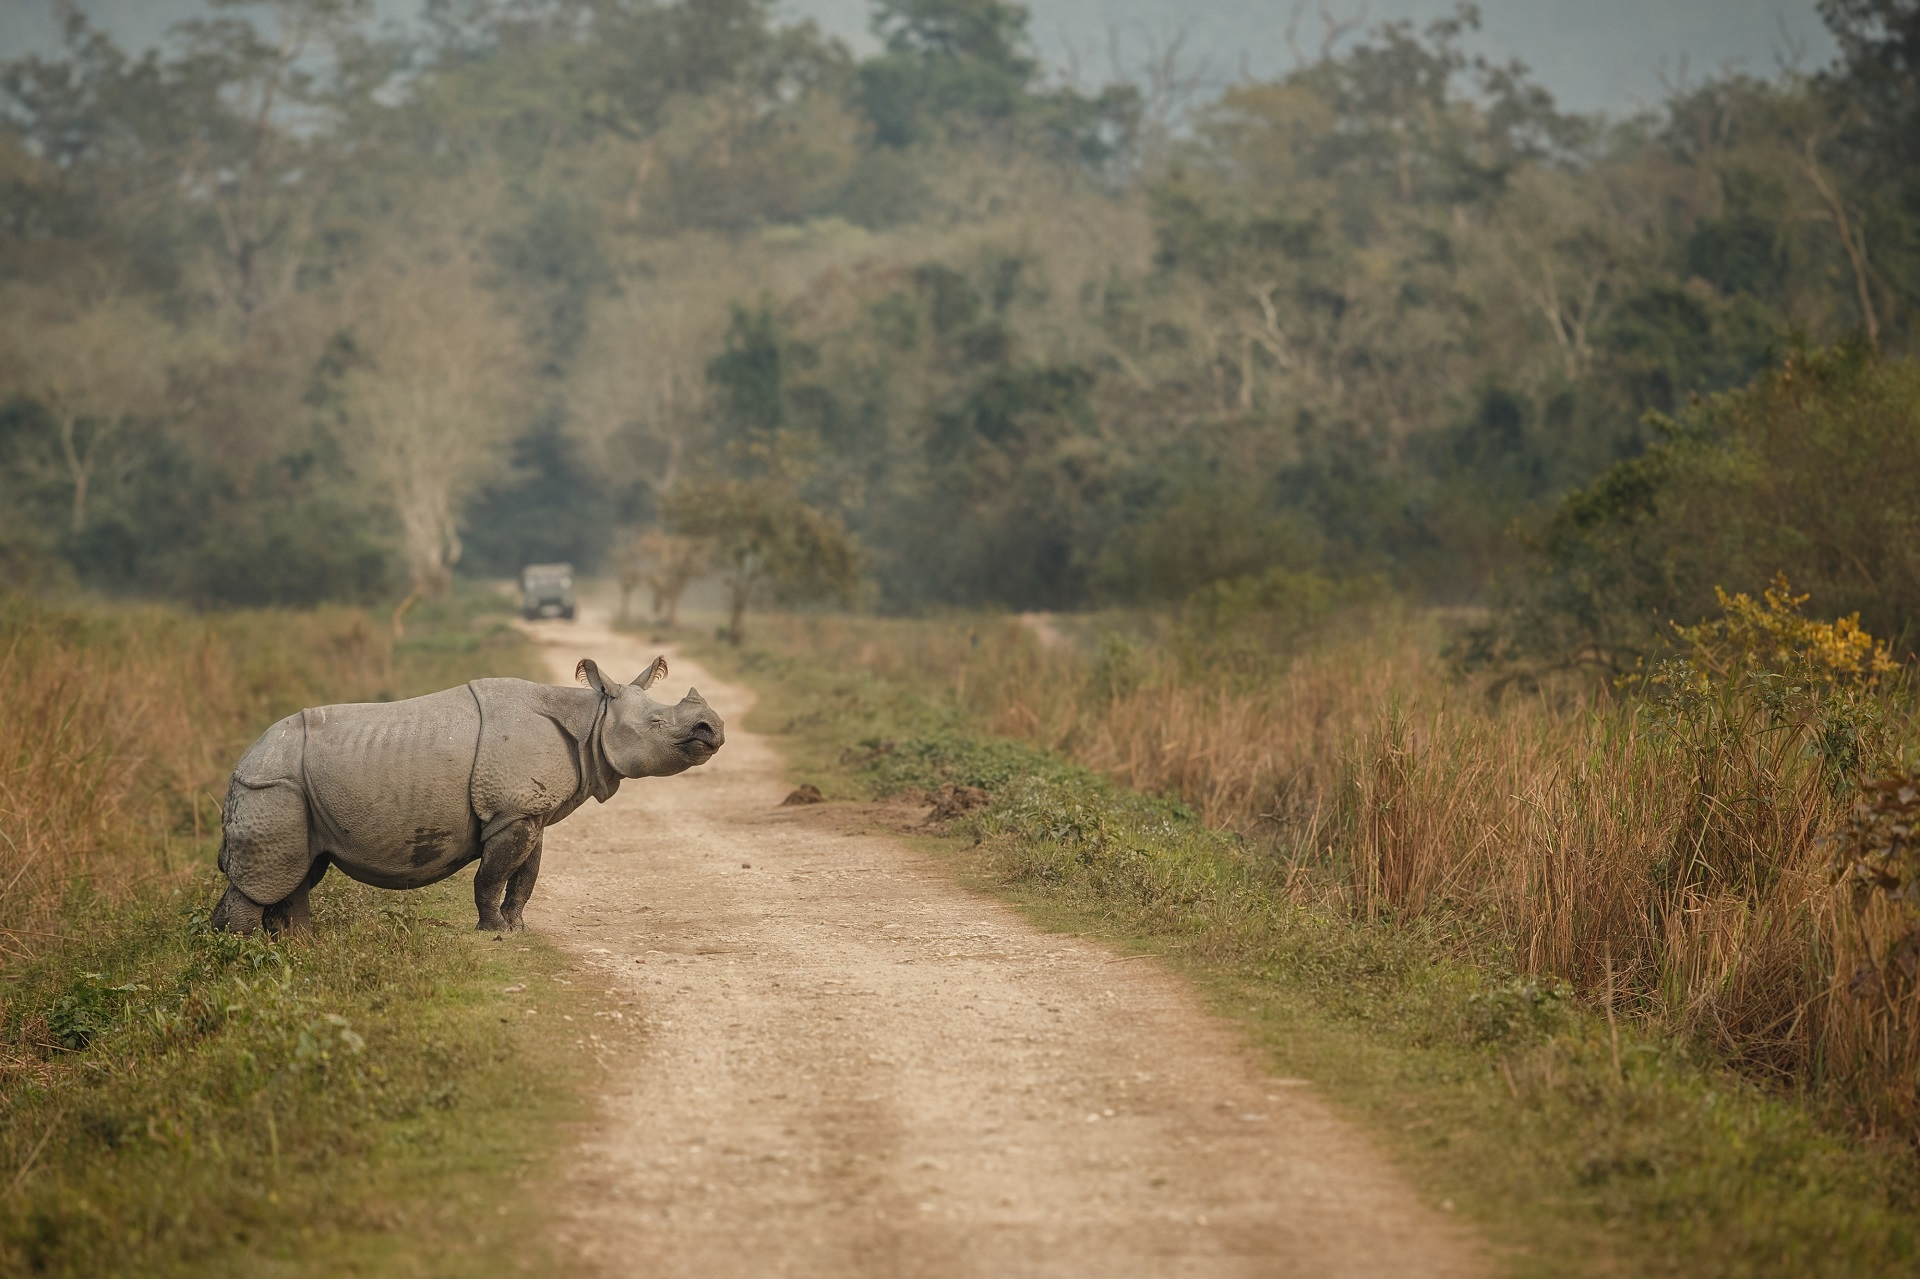 A Rhino in Kaziranga National Park, Assam